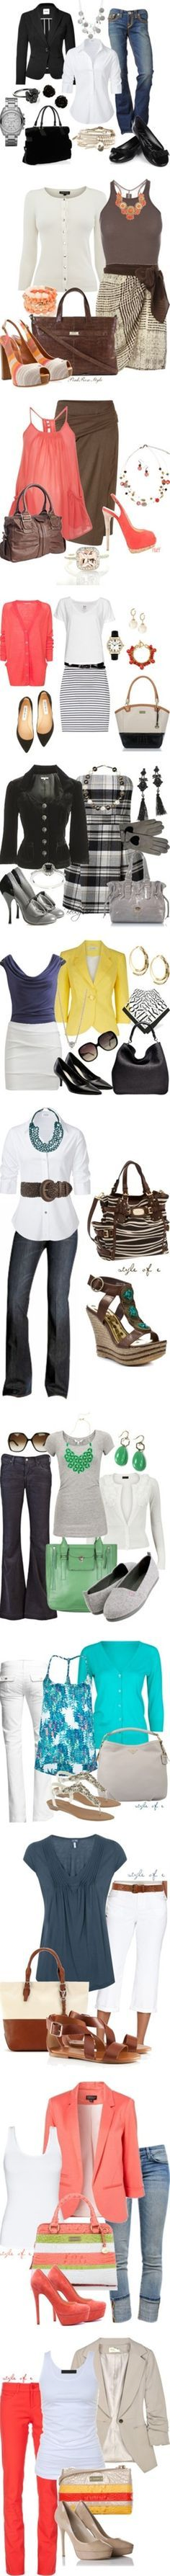 Super Wardrobe and Style Tips for Women Over 45 - Lifestyle Fifty